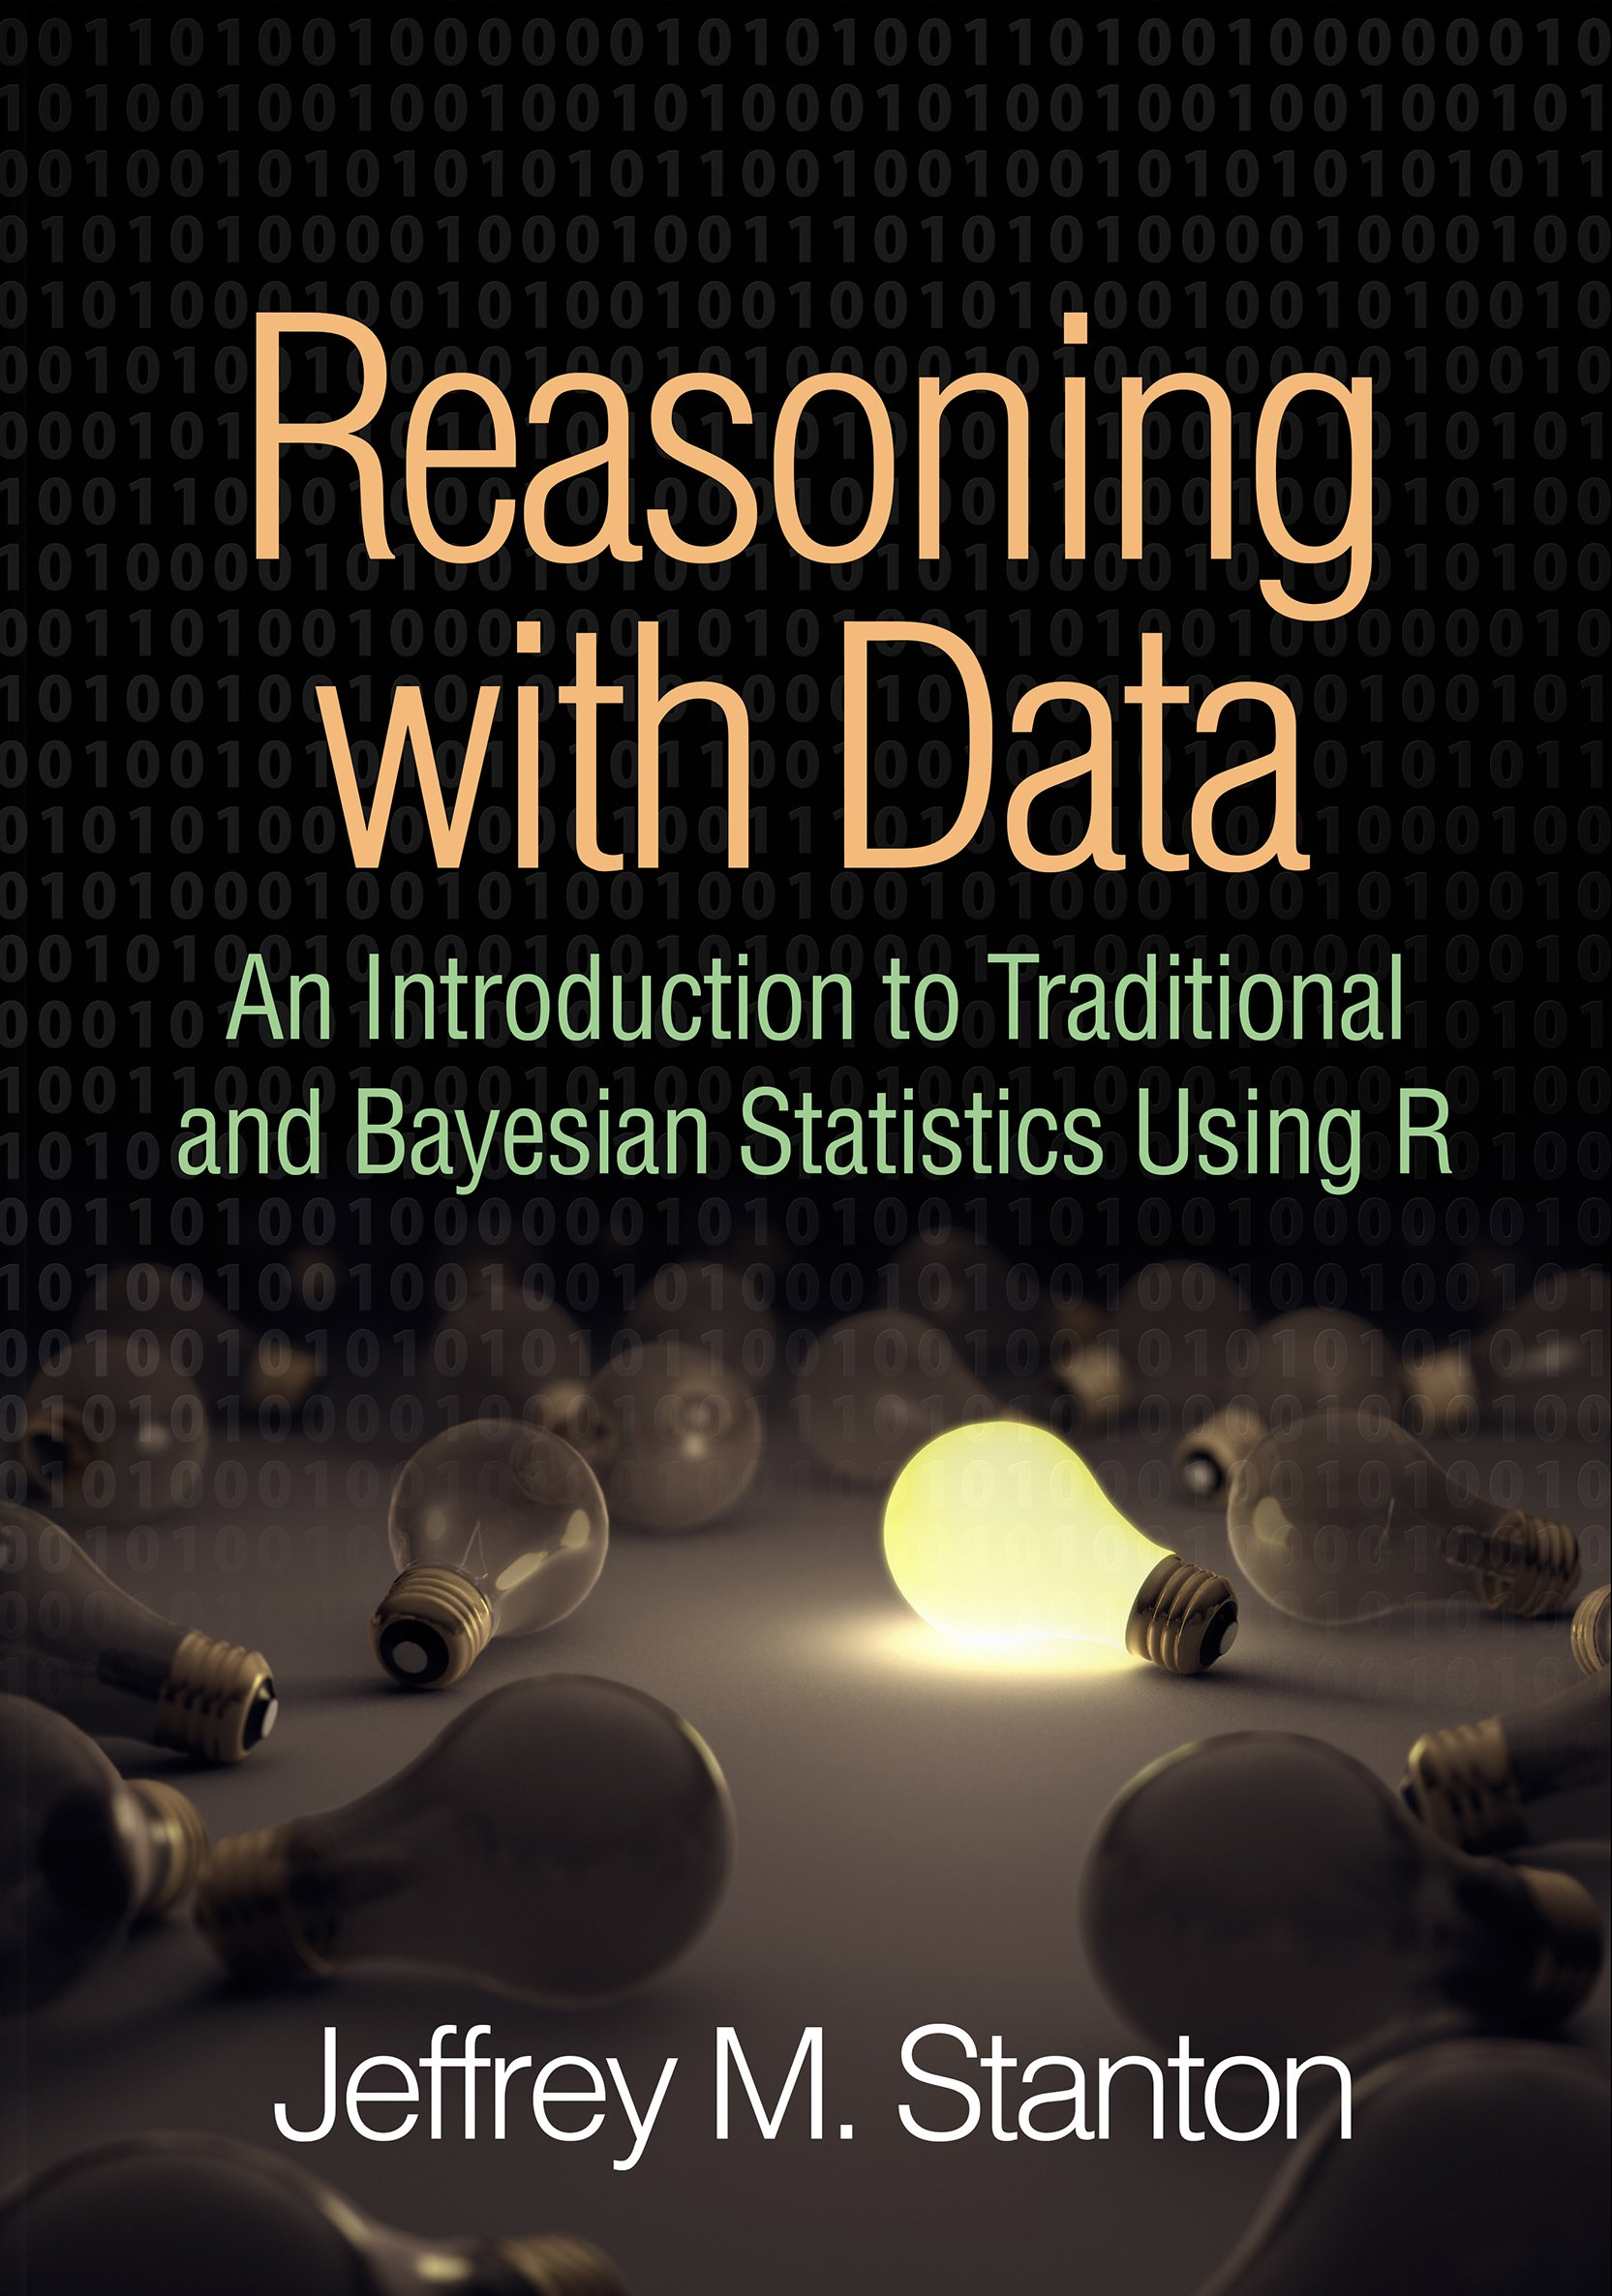 Reasoning with Data: An Introduction to Traditional and Bayesian Statistics Using R